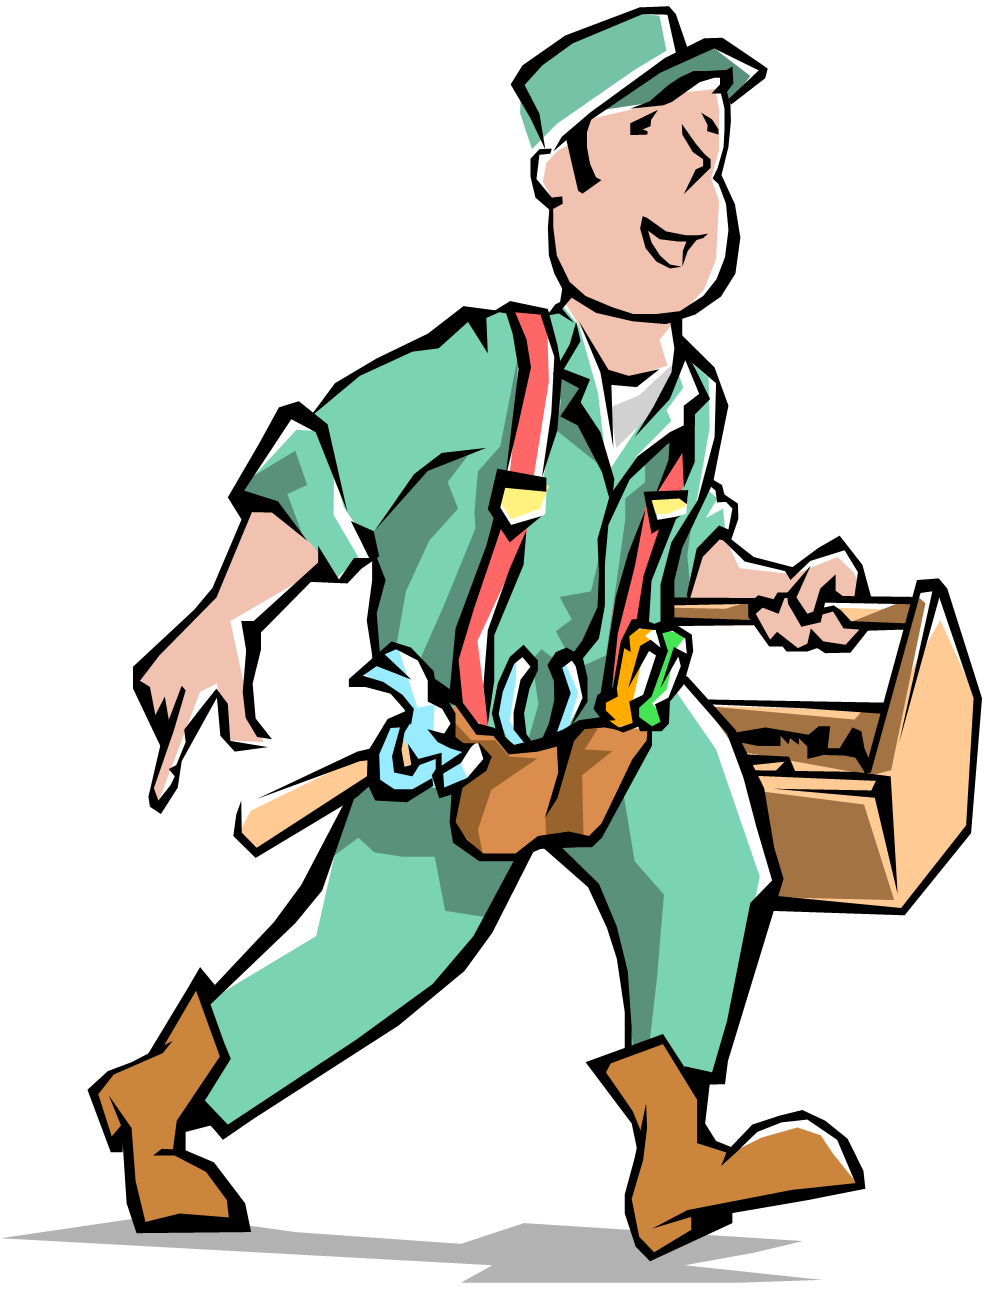 Handyman clipart hardware store. Engineer it support clip